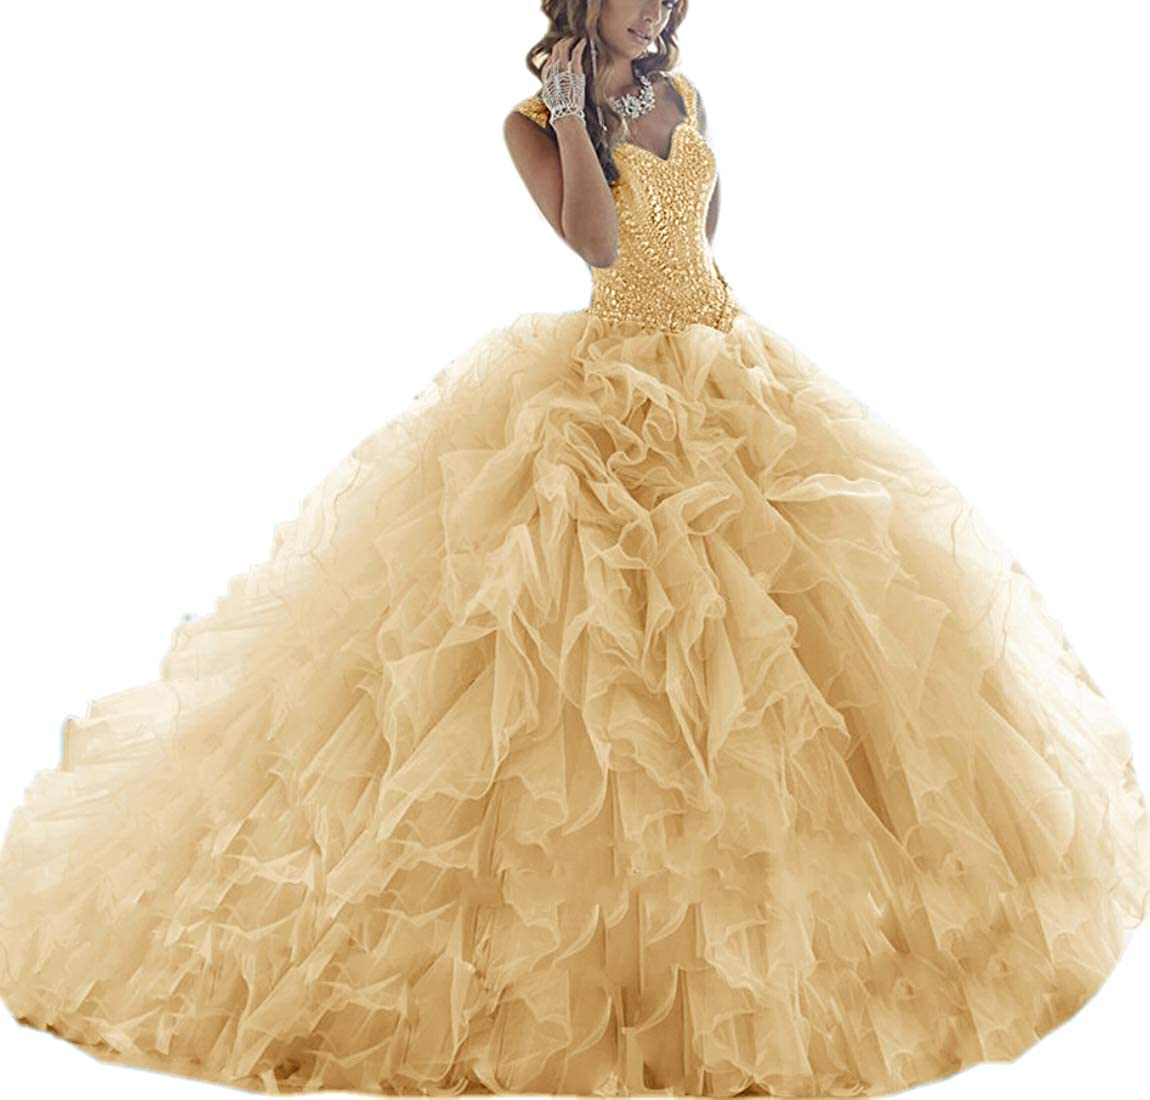 gold APXPF Women's Crystals Beaded Organza Ruffle Quinceanera Dress Sweet 16 Ball Gown Prom Dress